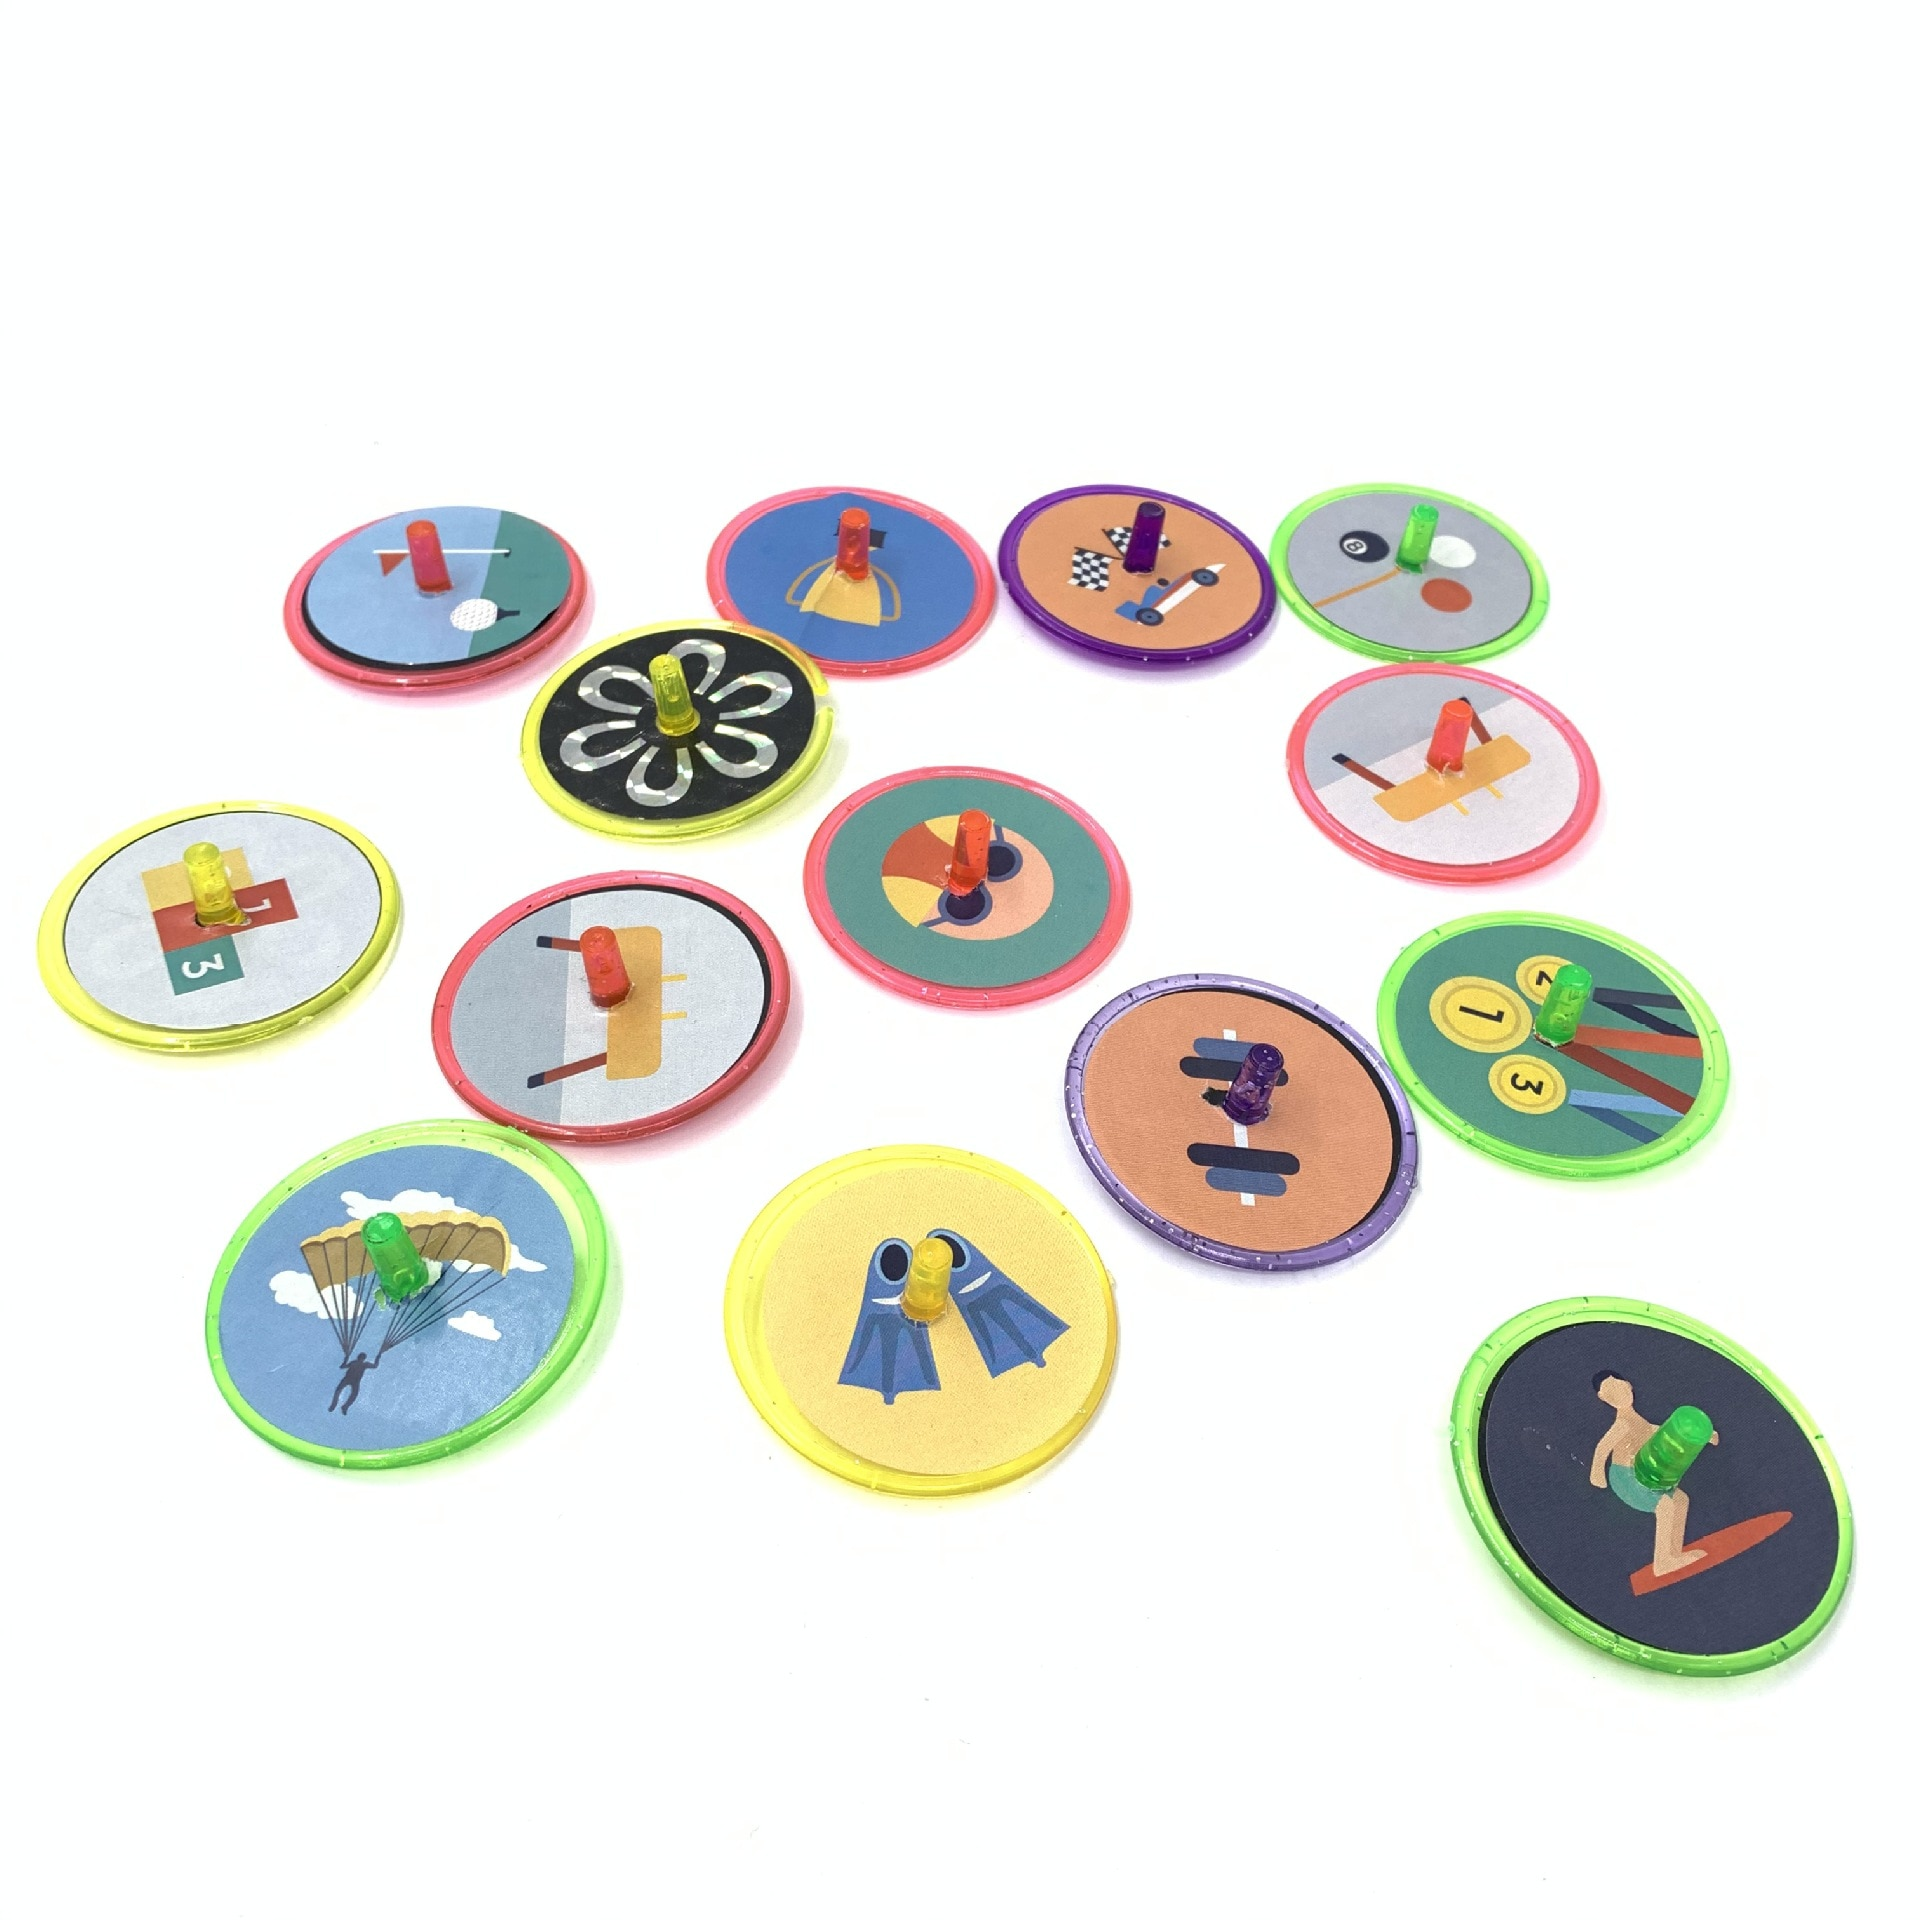 Stress Relieve Fidget Toy Combination 55 Pieces Extrusive-Solving Kids Hot Selling Various Styles Set Wholesale enlarge